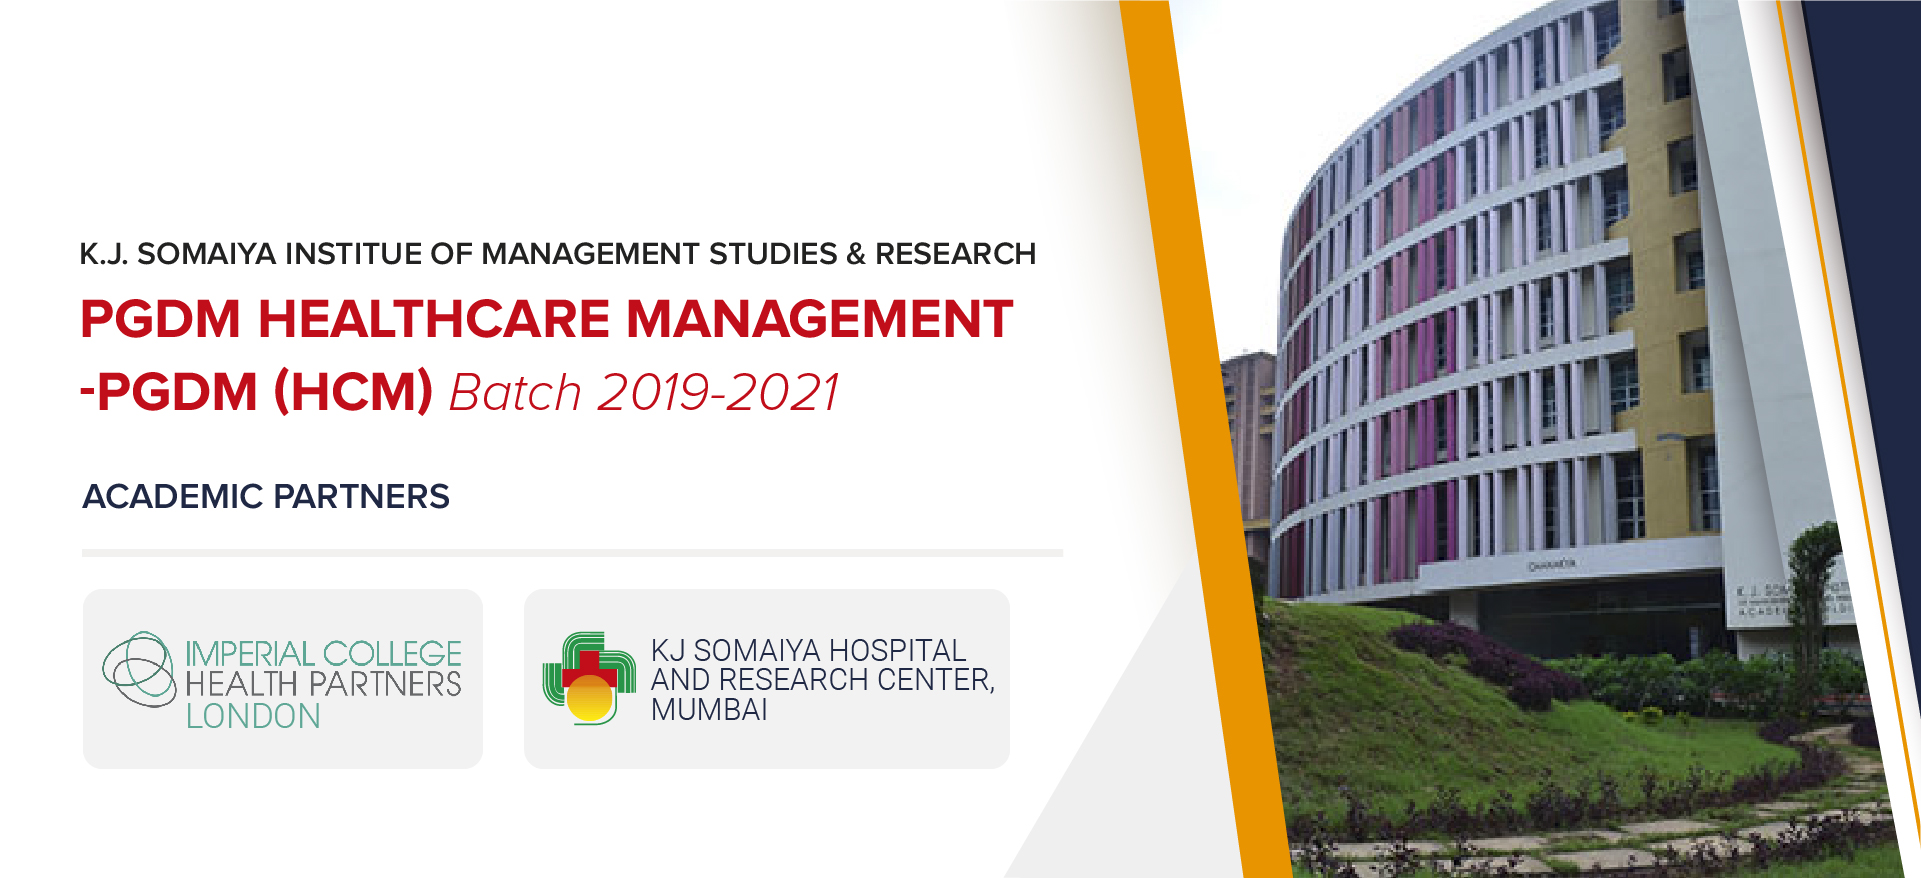 K.J. Somaiya institute of management studies and research PGDM healthcre management-PGDM (HCM) batch 2019-2021